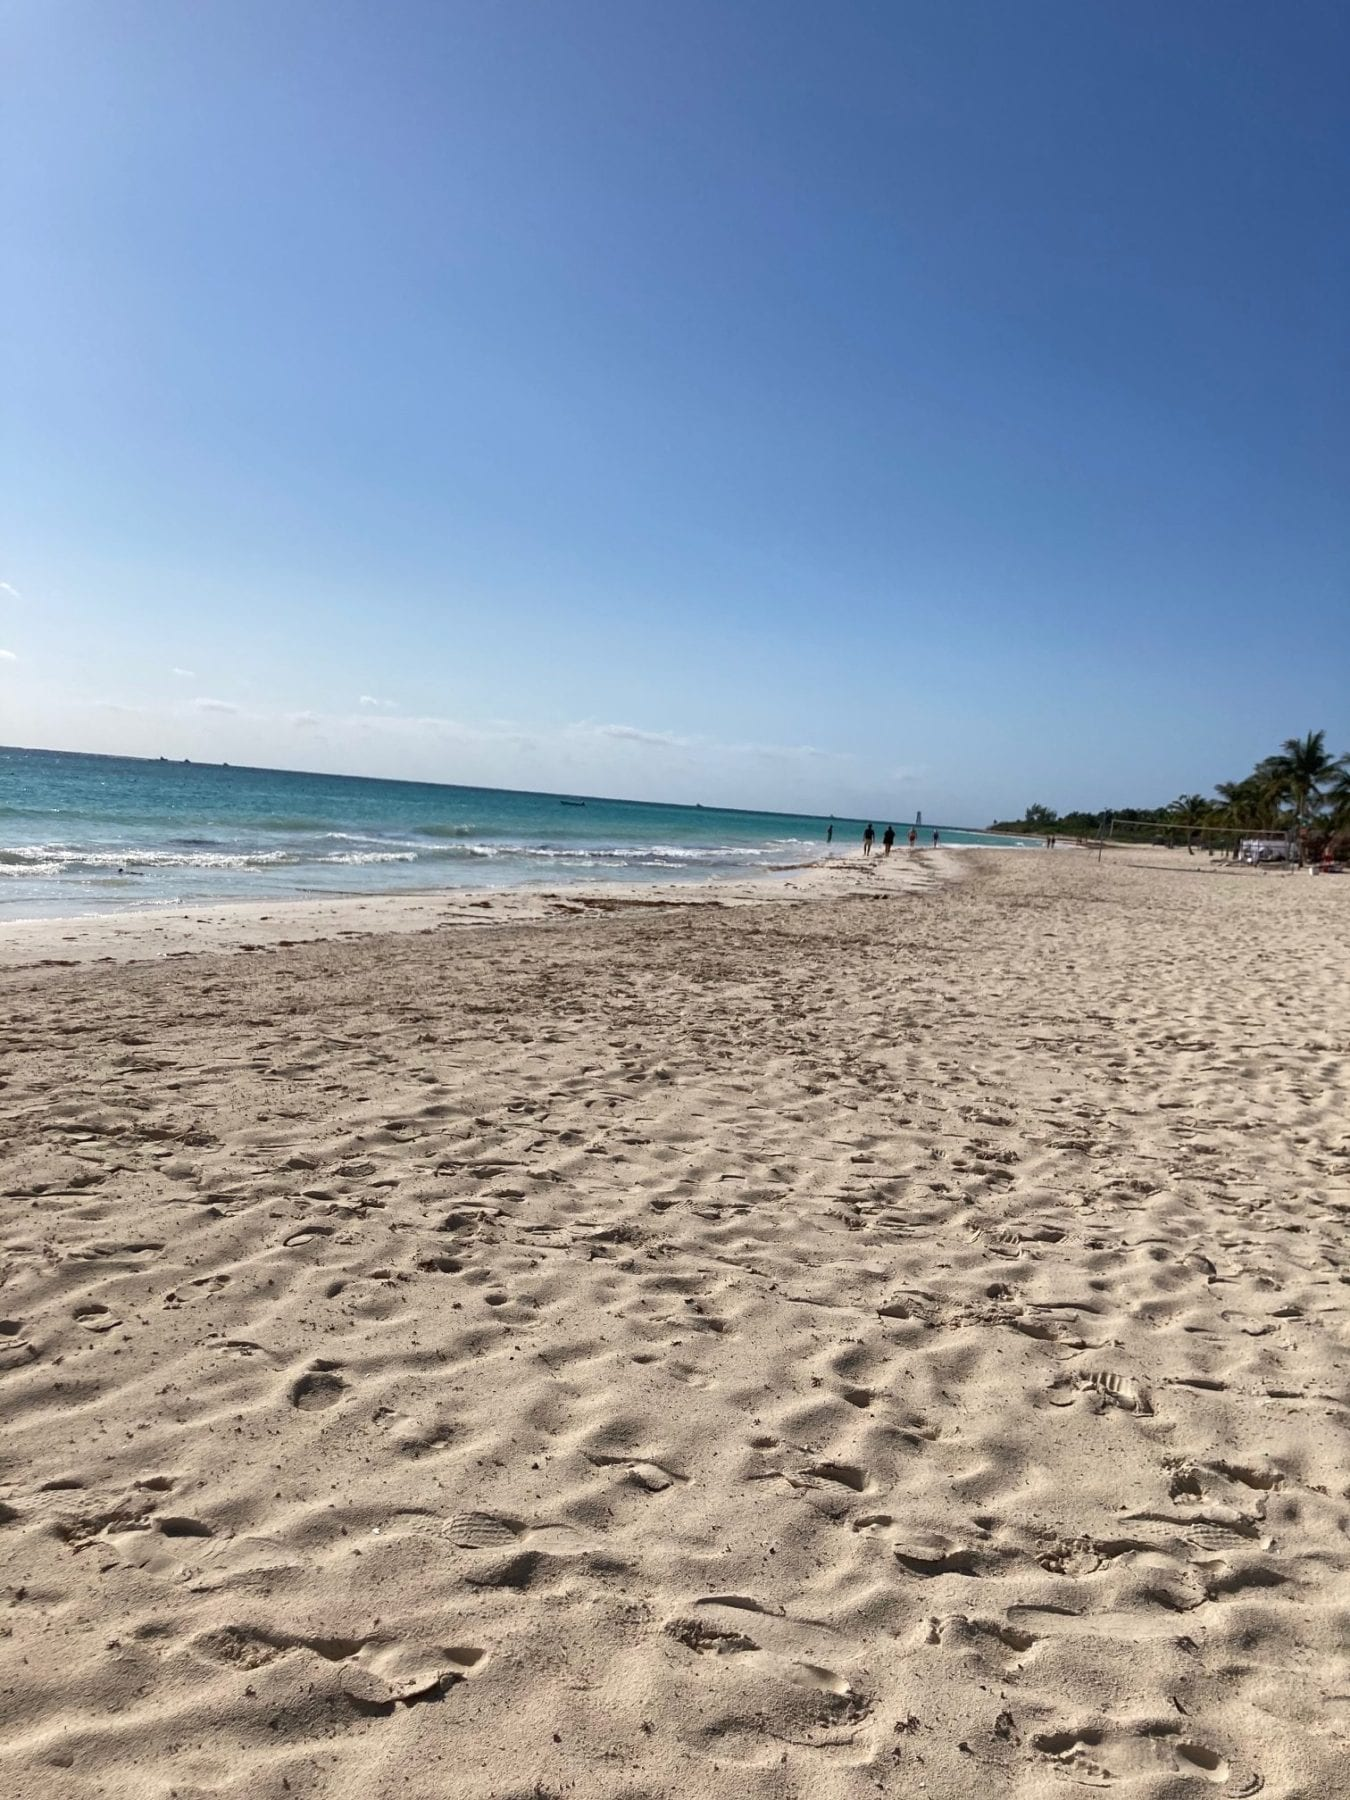 Travel Tips for Cancun - Is it Safe?